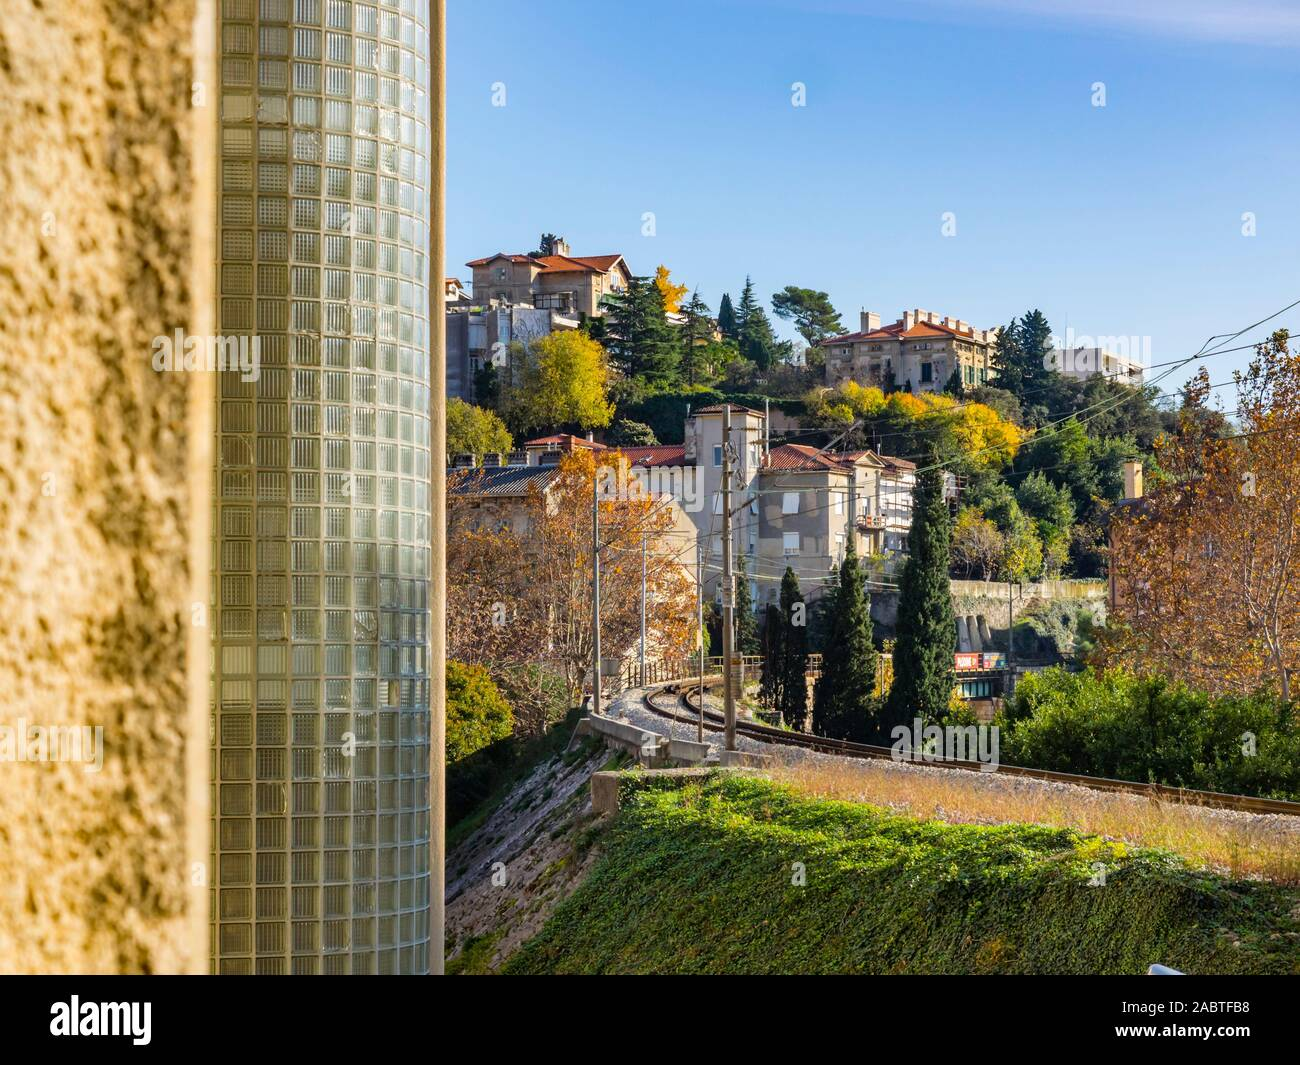 Railway in Rijeka Croatia Stock Photo